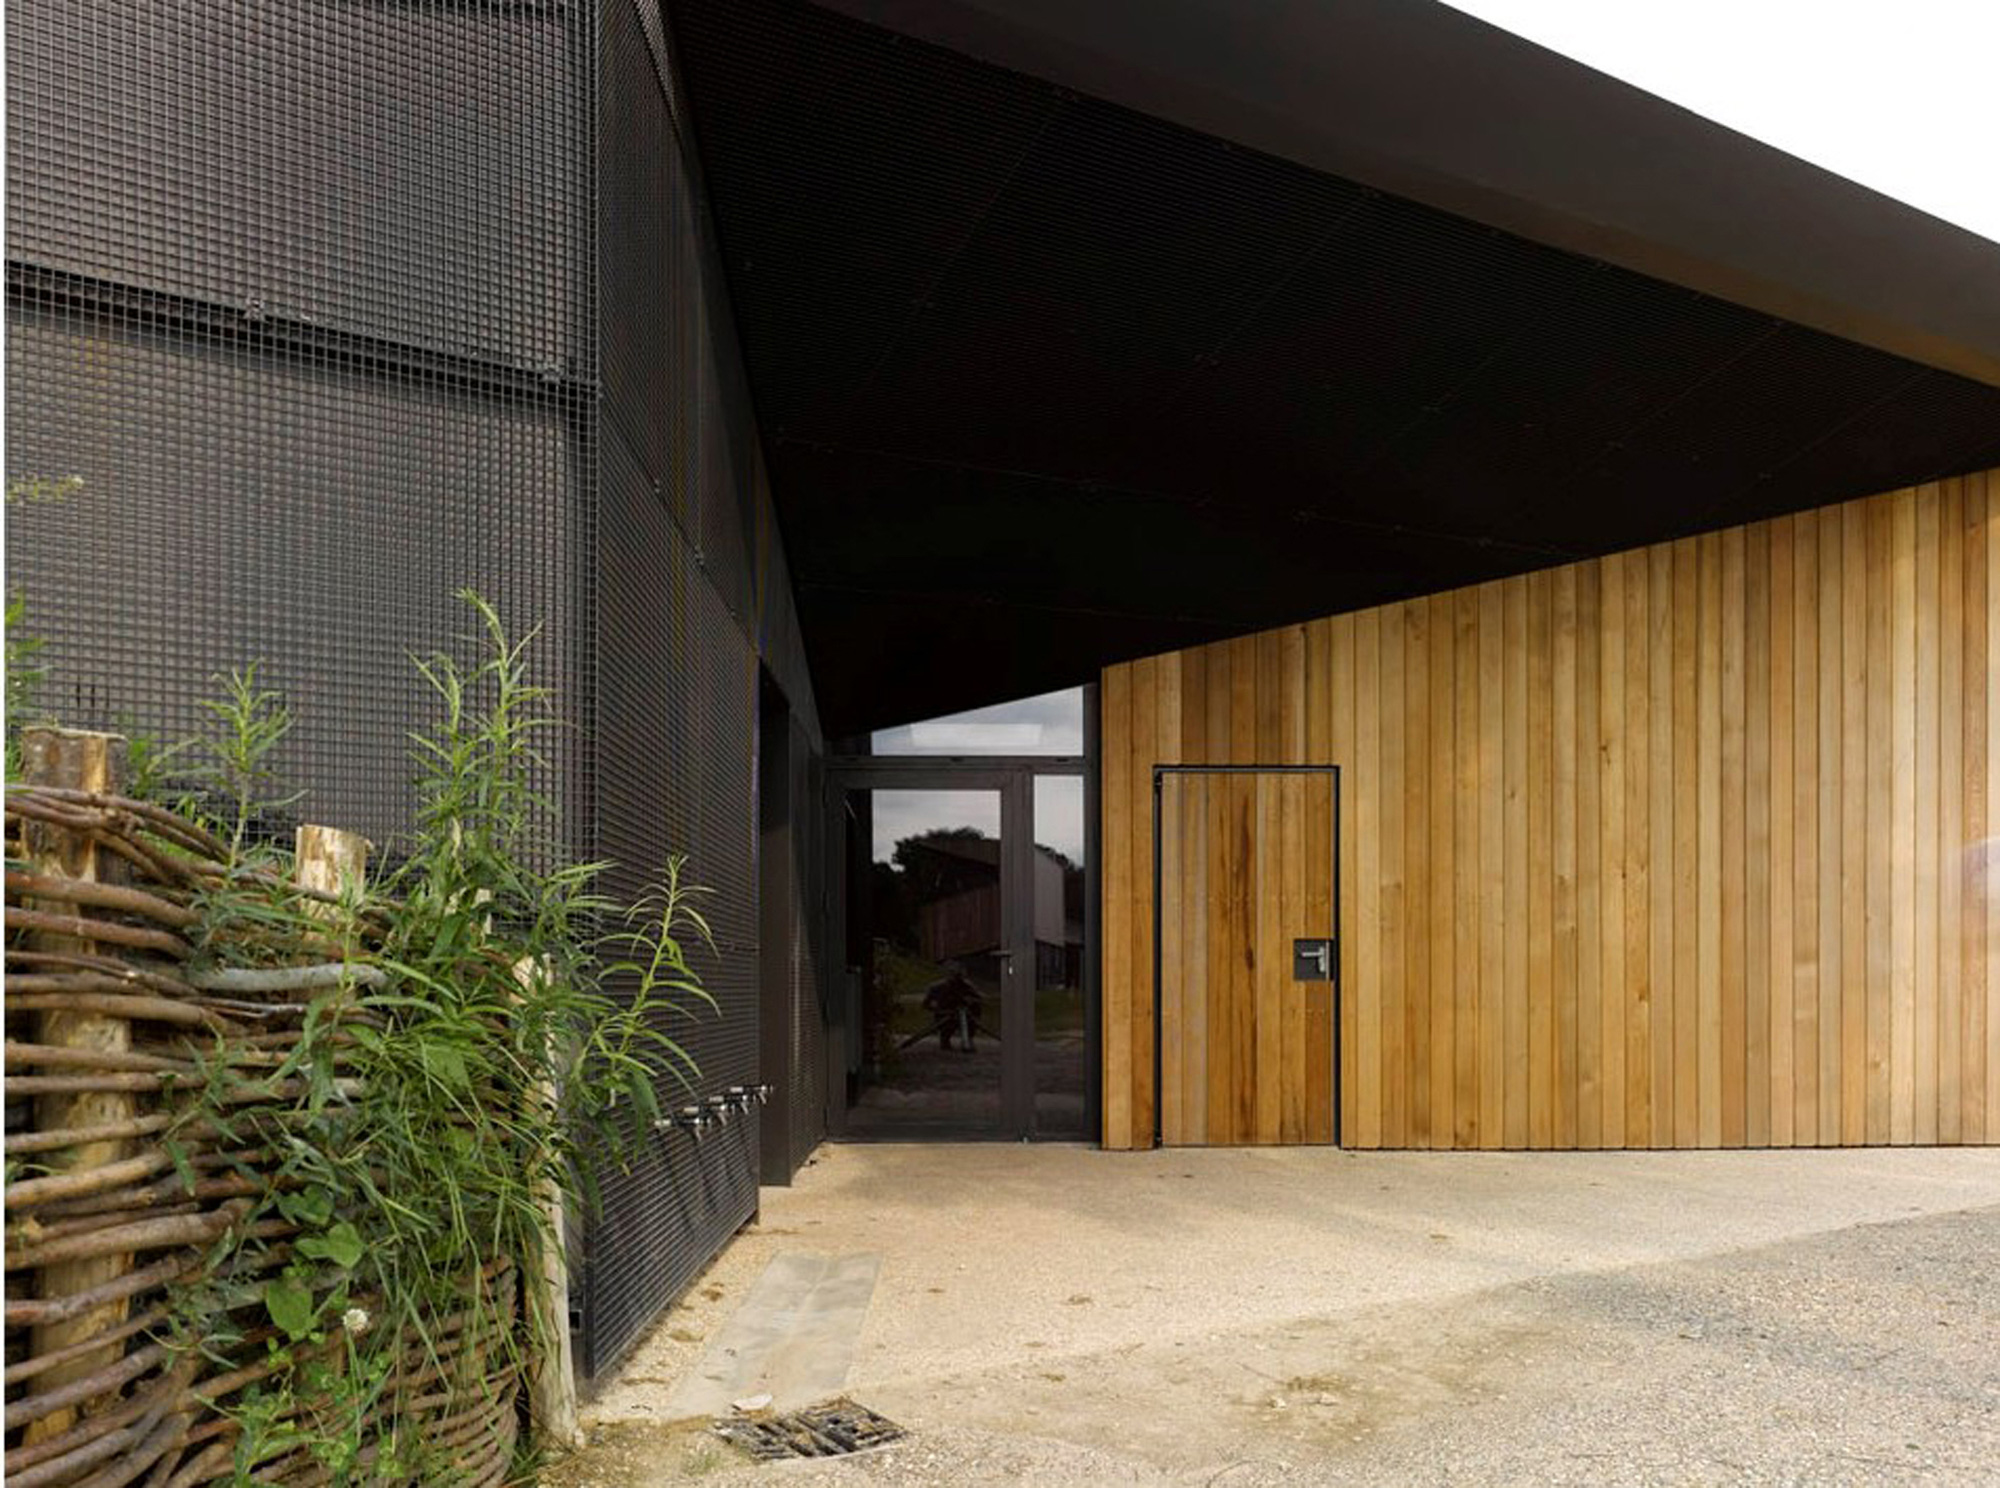 Hidden Locker Rooms / MU Architecture + Ateliers Les Particules (6)